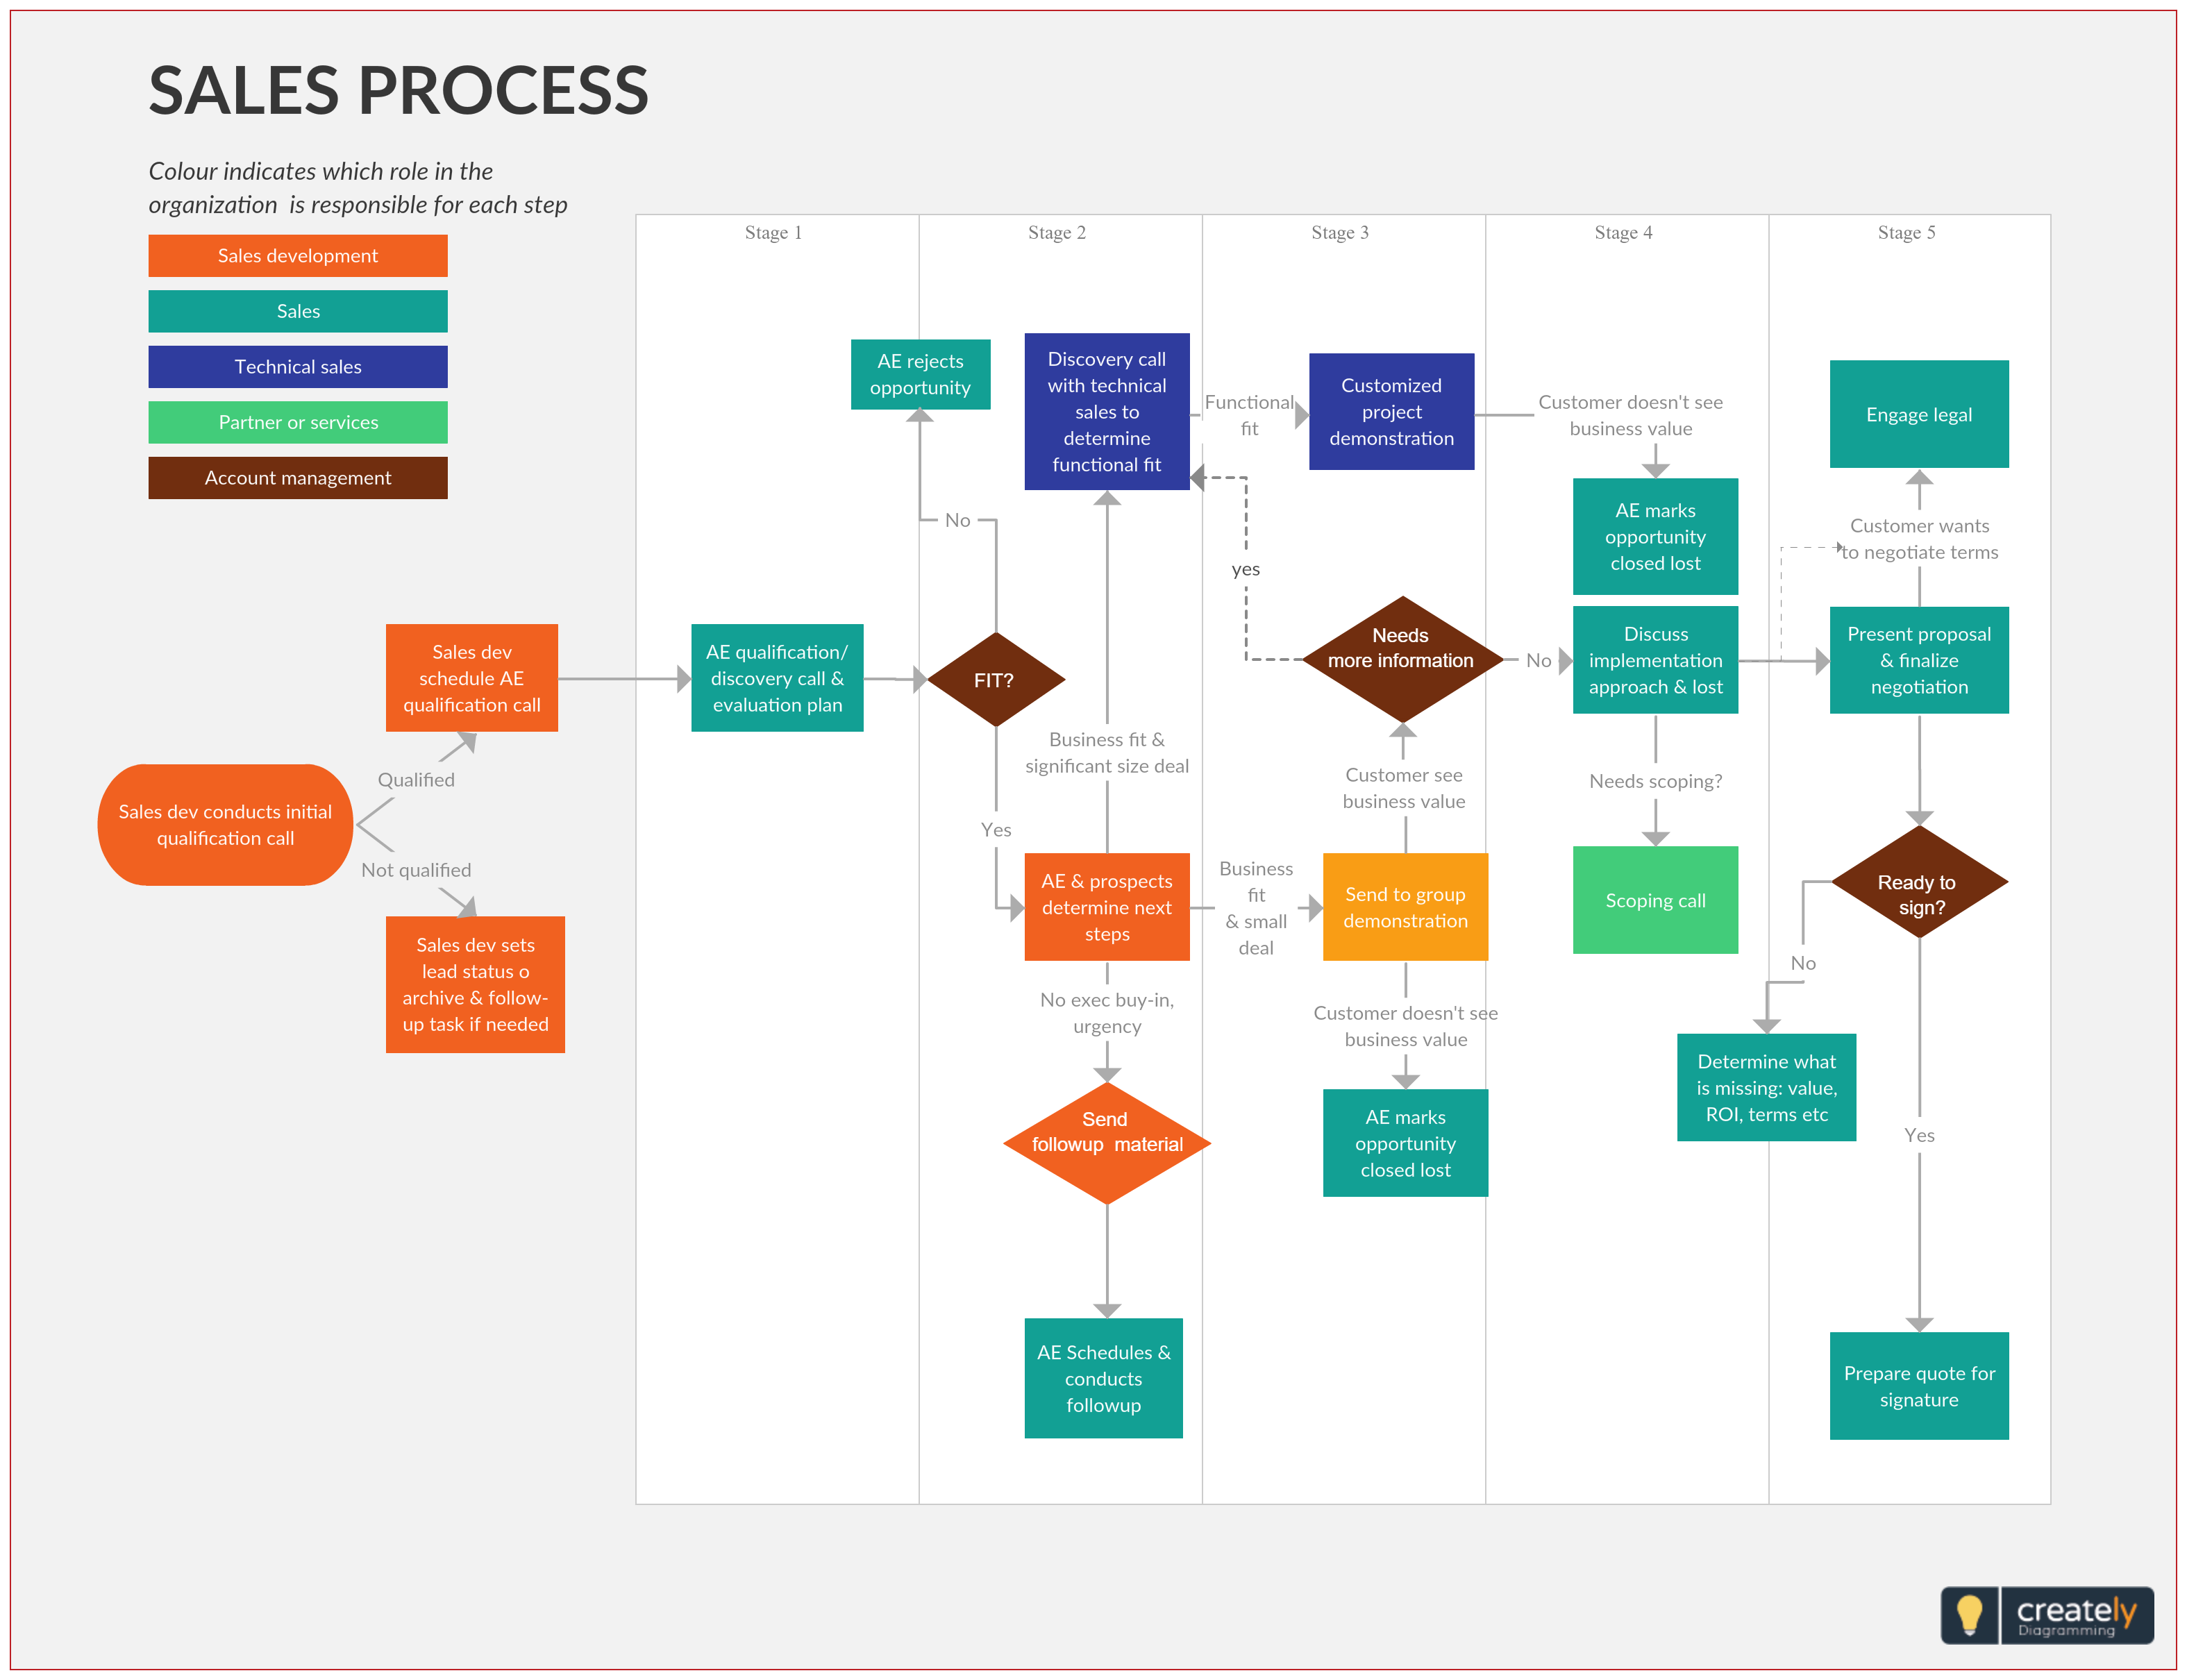 Sales Lead Qualification Process Flowchart Is Step By Step